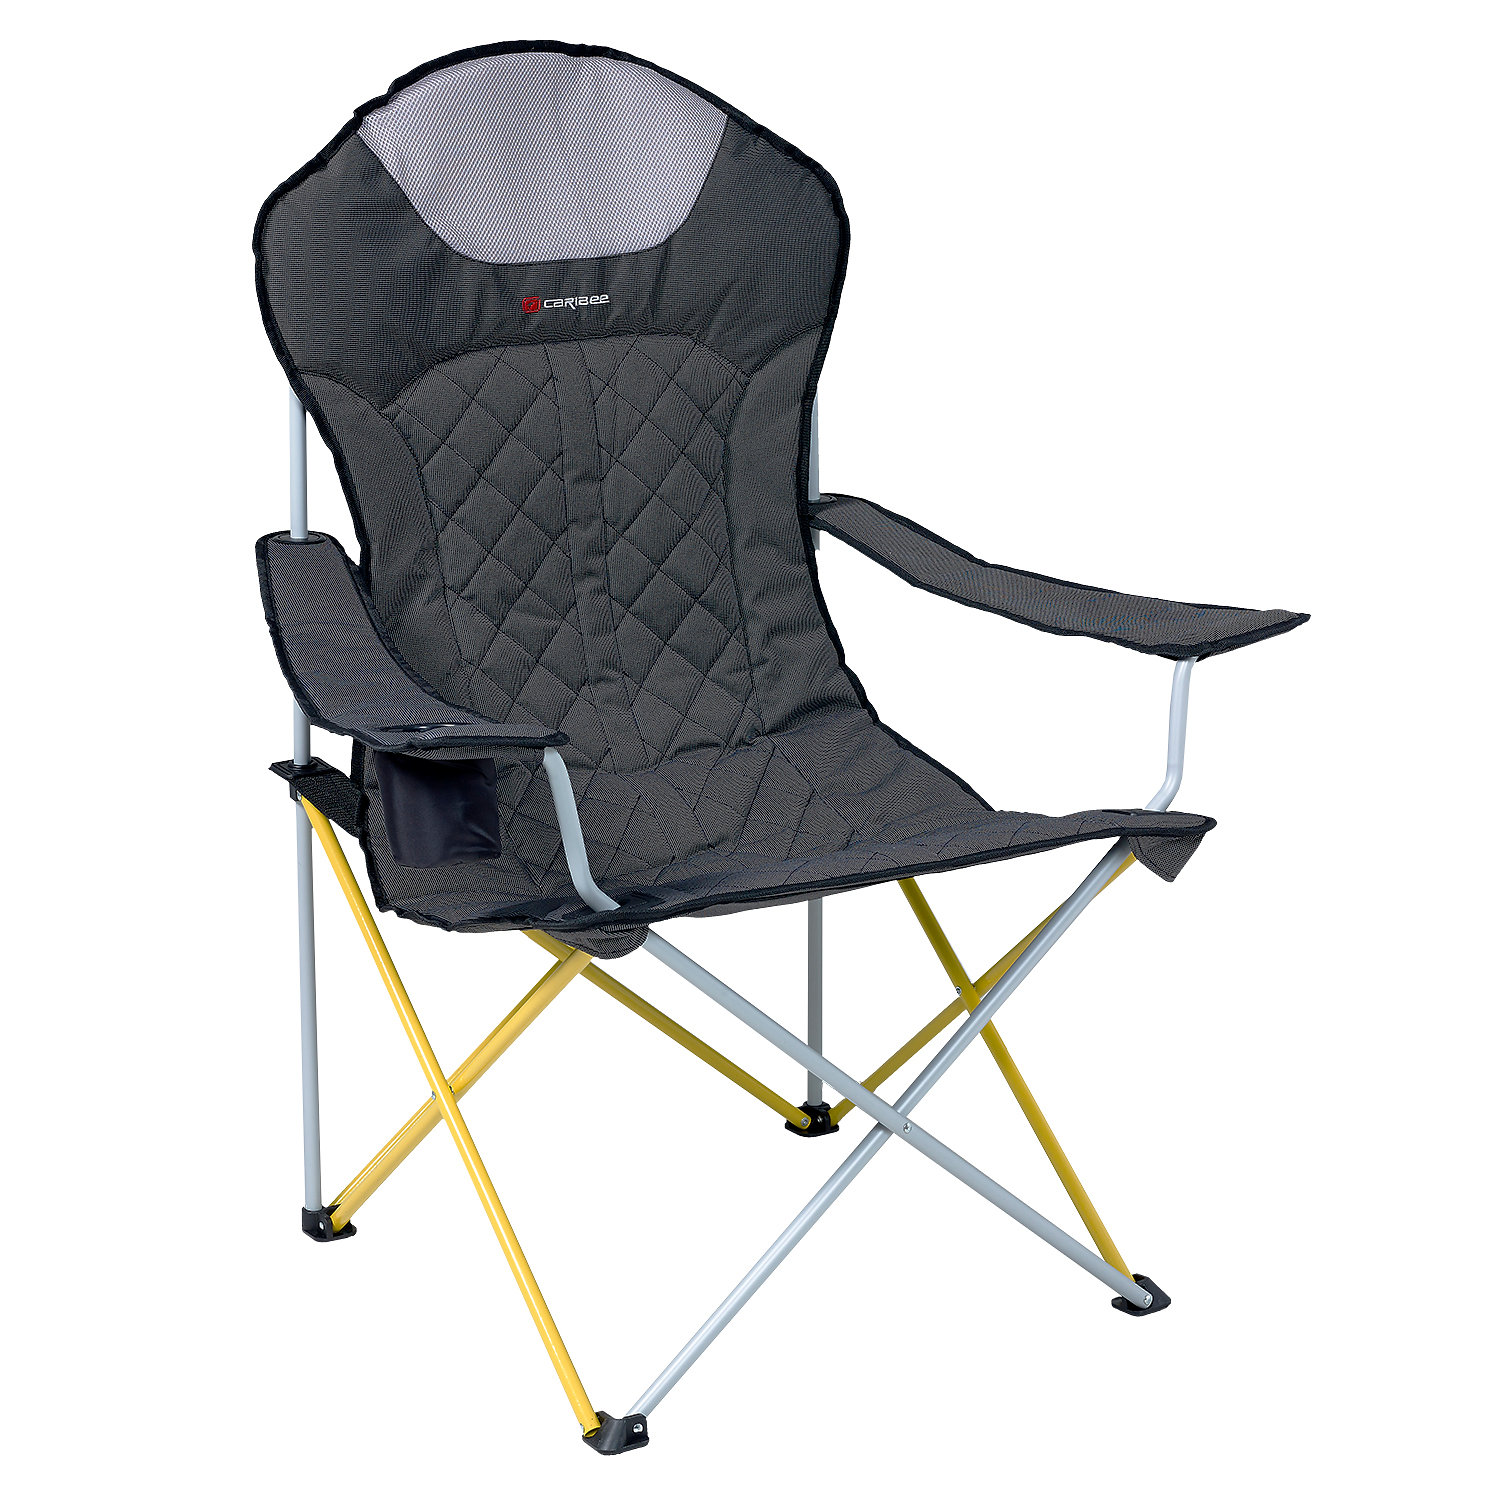 High Backed, King Size Folding Chair With 150kg Load Rating